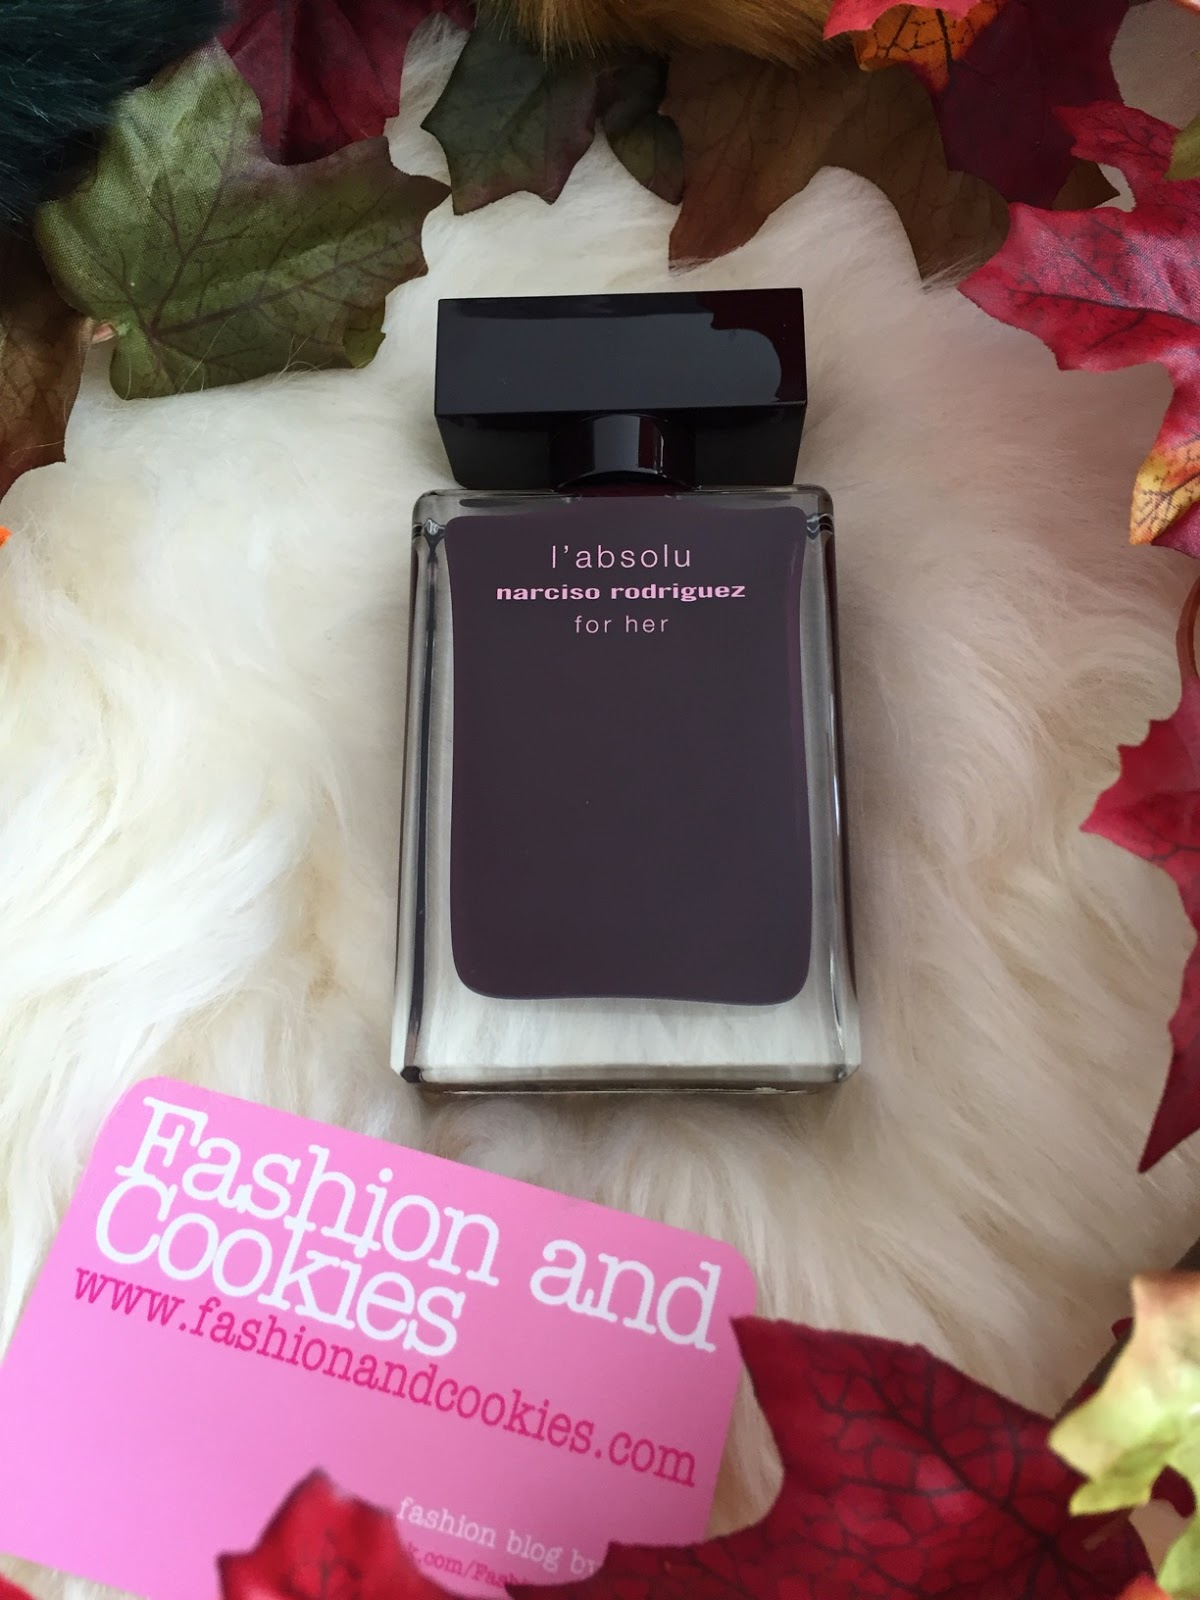 Narciso Rodriguez for her l'absolu eau de parfum review on Fashion and Cookies fashion and beauty blog